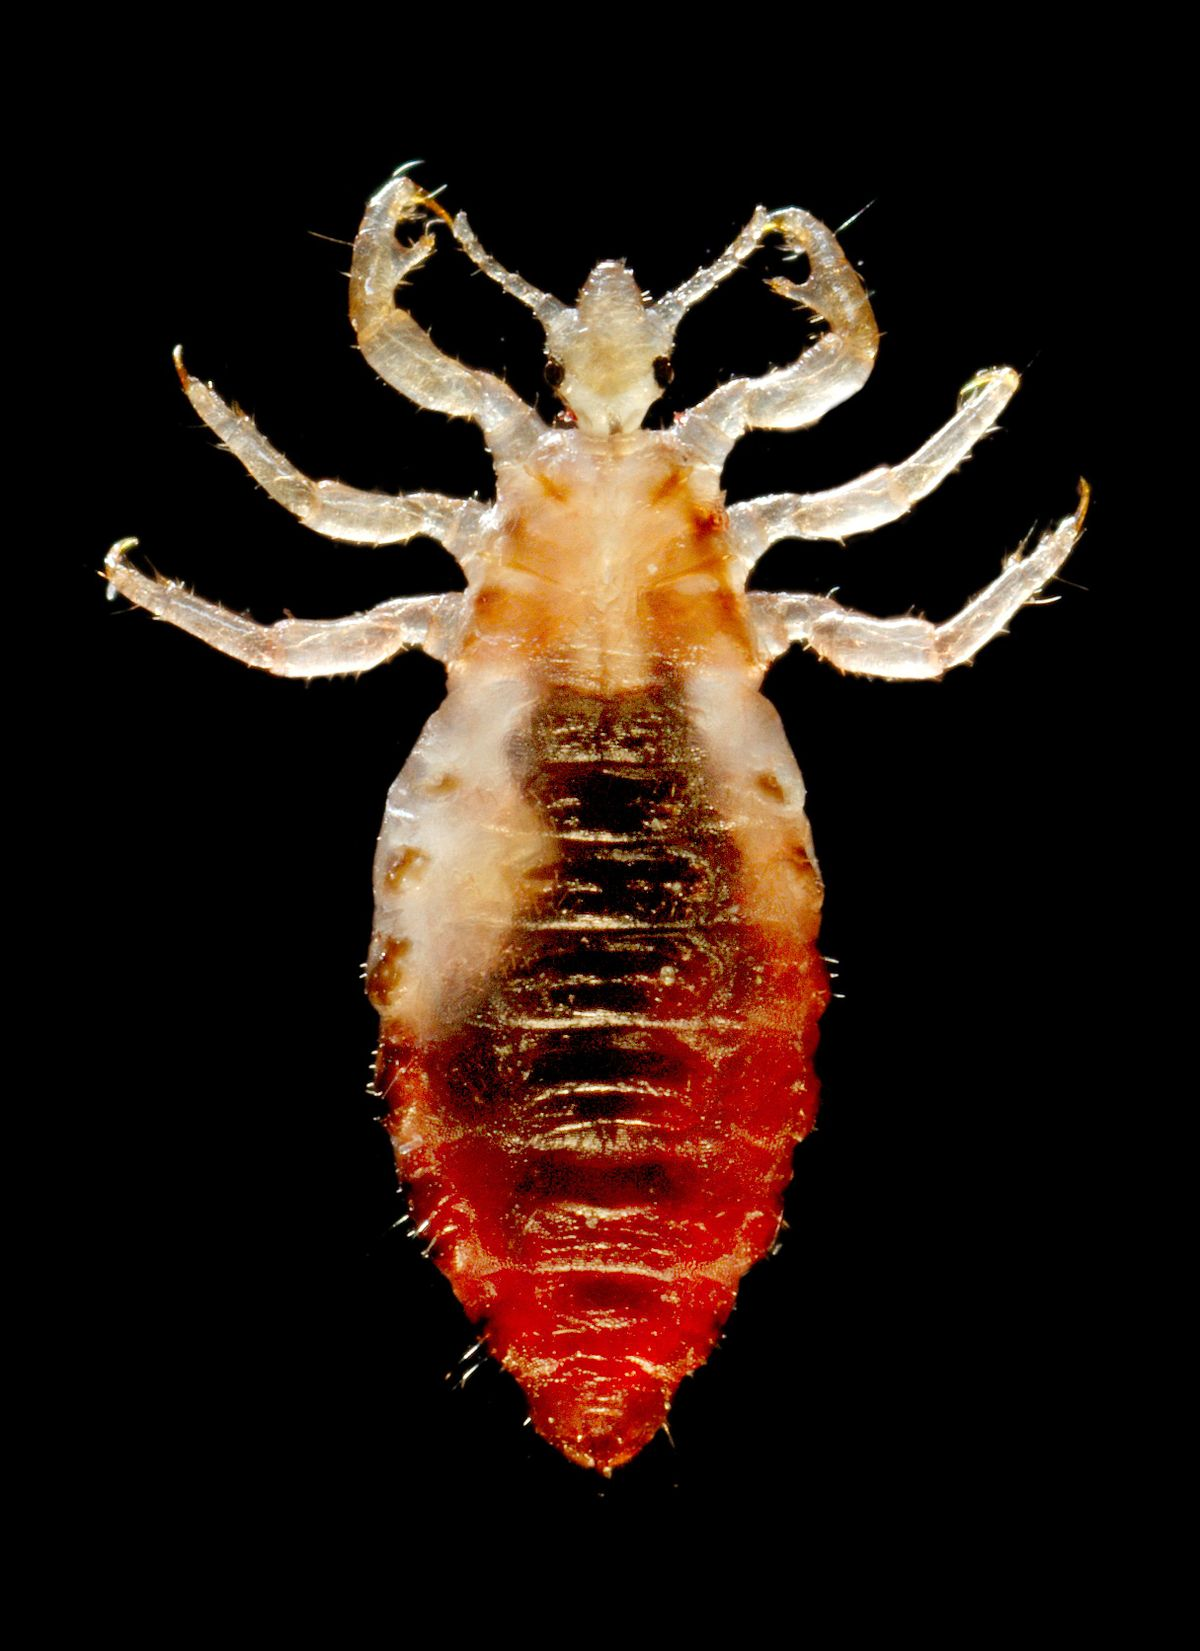 Head Lice Pictures – Louse Photo Gallery with Facts